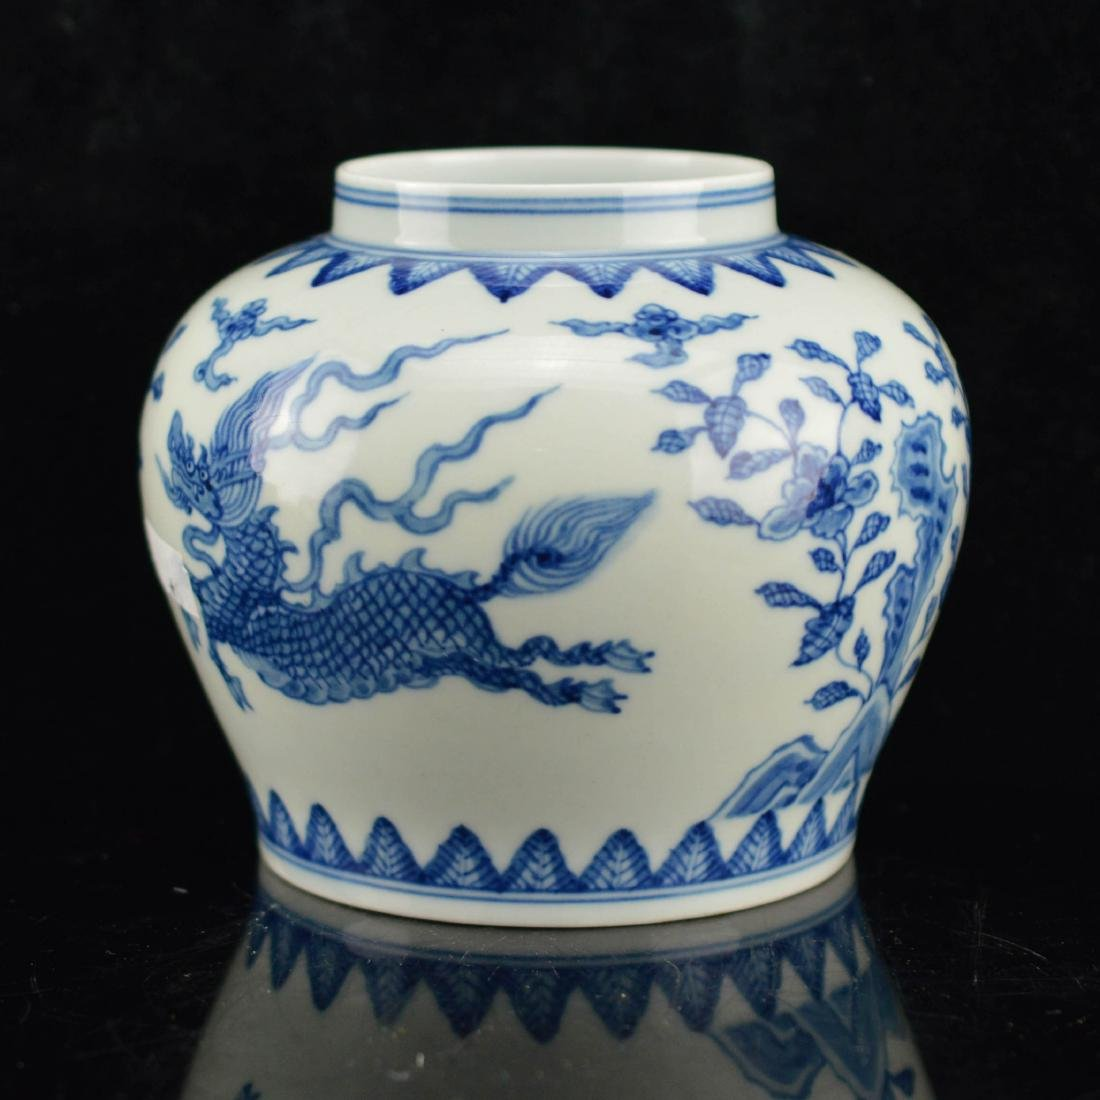 Porcelain Floral dragon jar